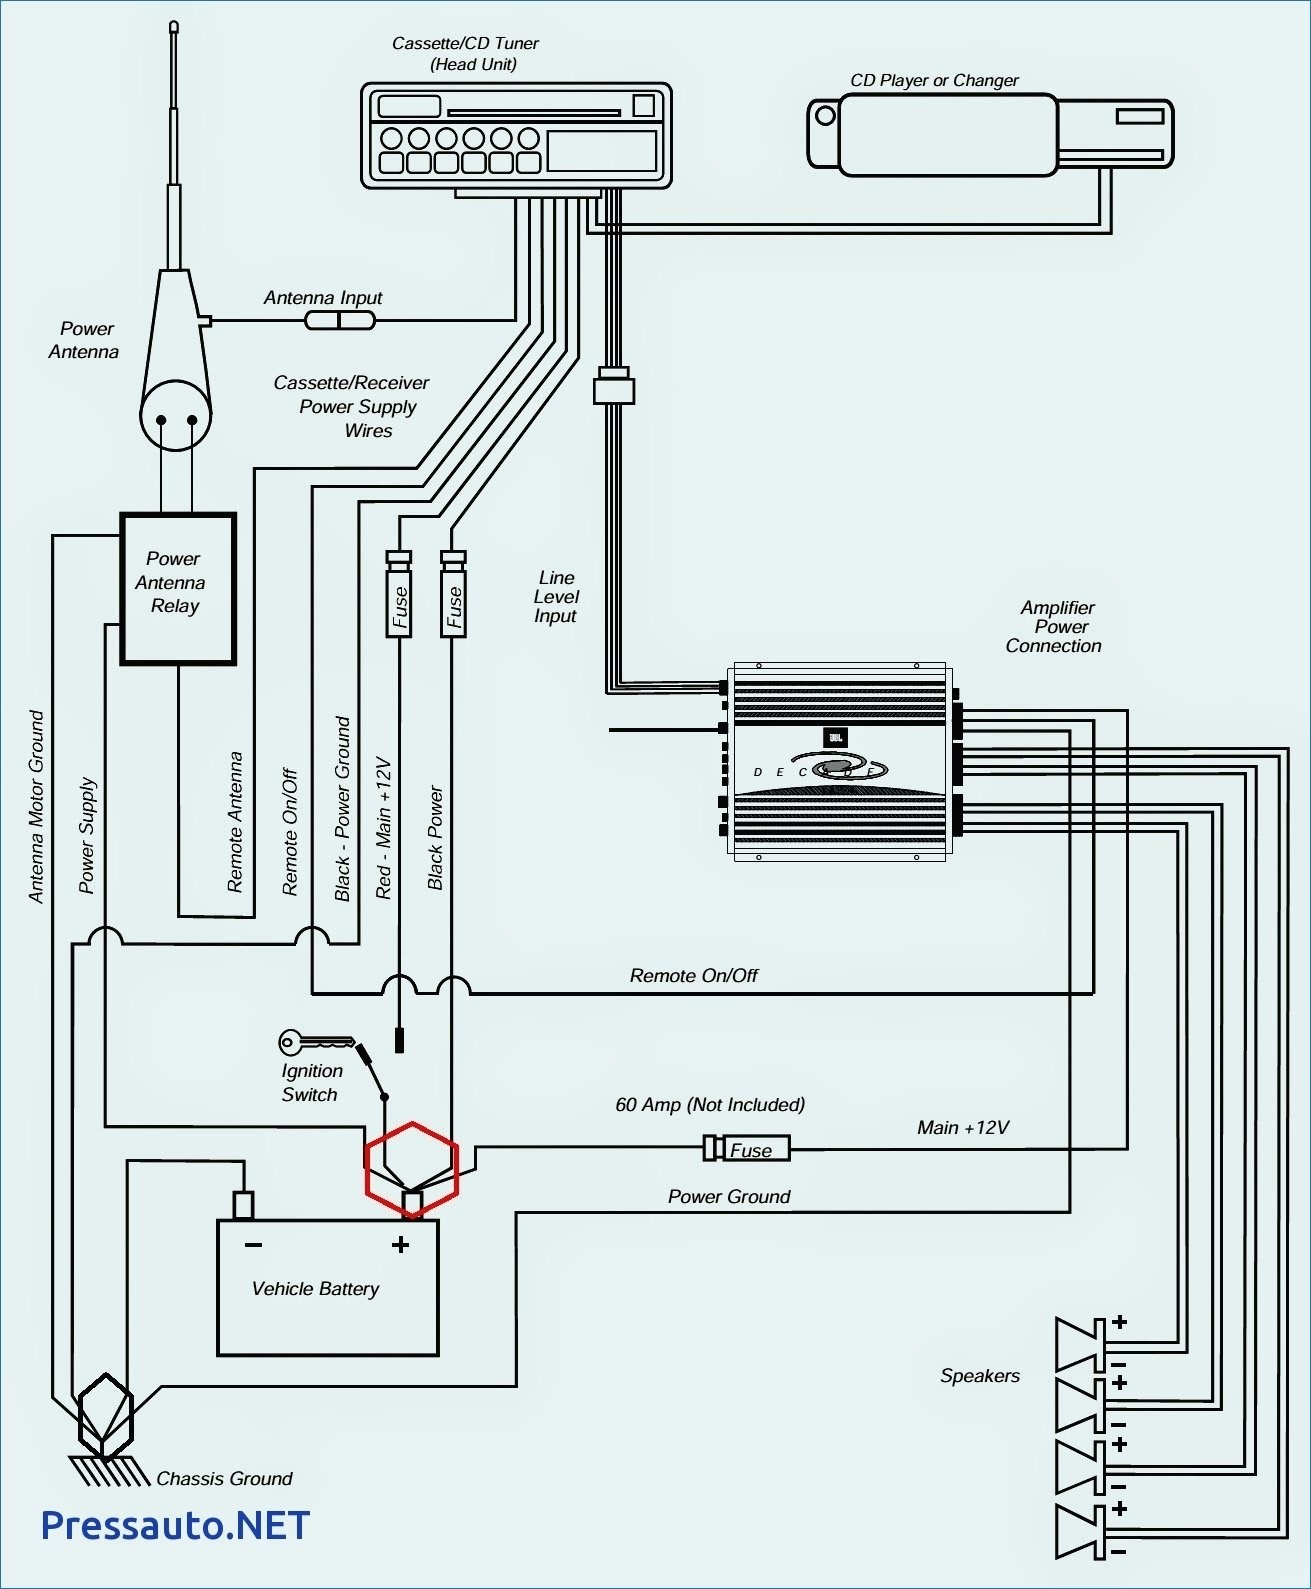 Nutnicha29060601.2Waky | Alpine Power Pack Wiring Diagram Ktp - Alpine Ktp-445U Wiring Diagram